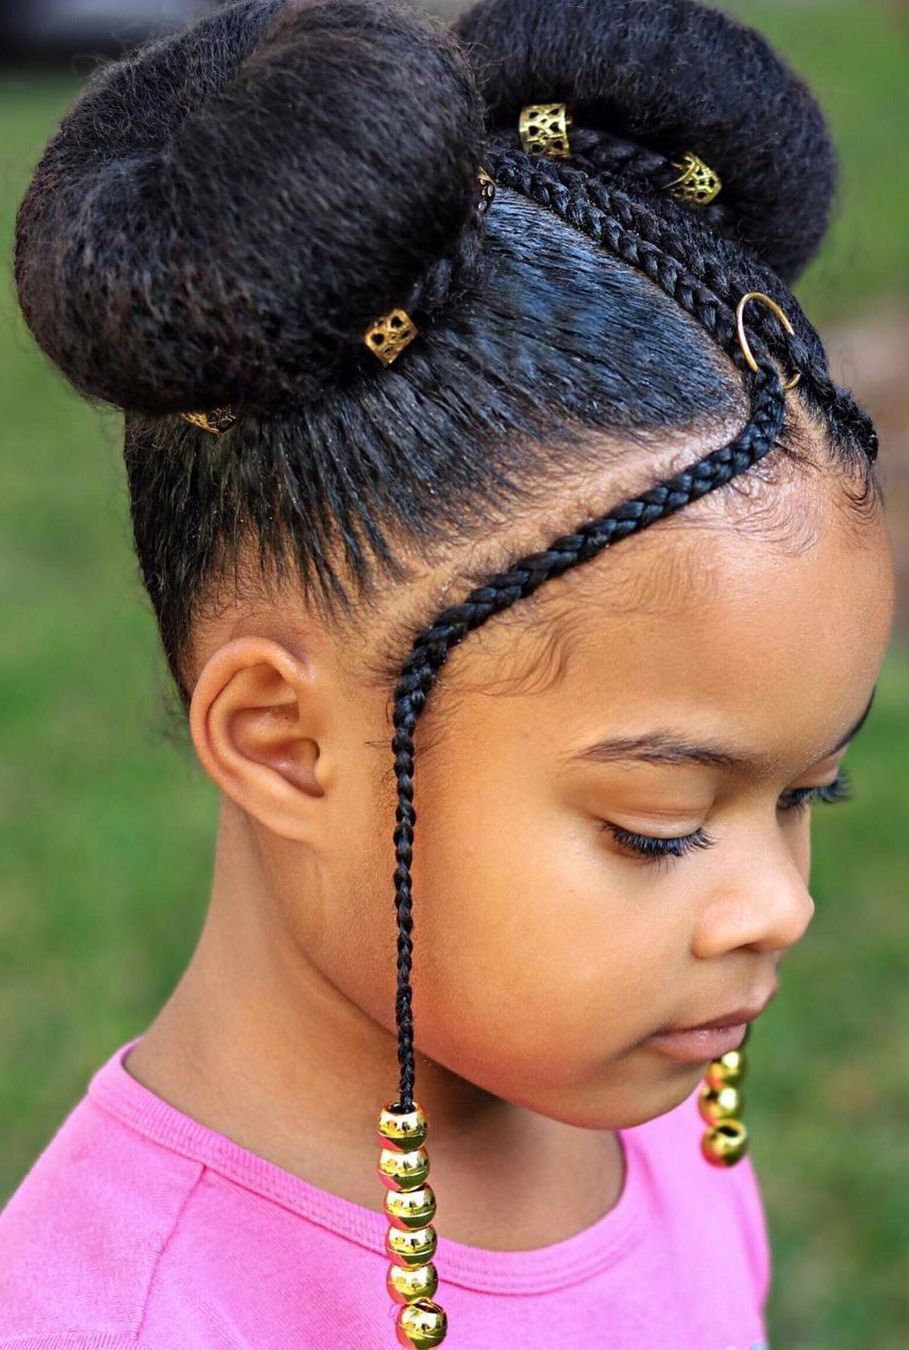 Enter into the greatest collection of protective hairstyles for the African American women with an enormous number of designs and styles. #protectivestyles #protectivehairstyles #naturalhairstyles #braids #africanamericanwomen #hairstyles